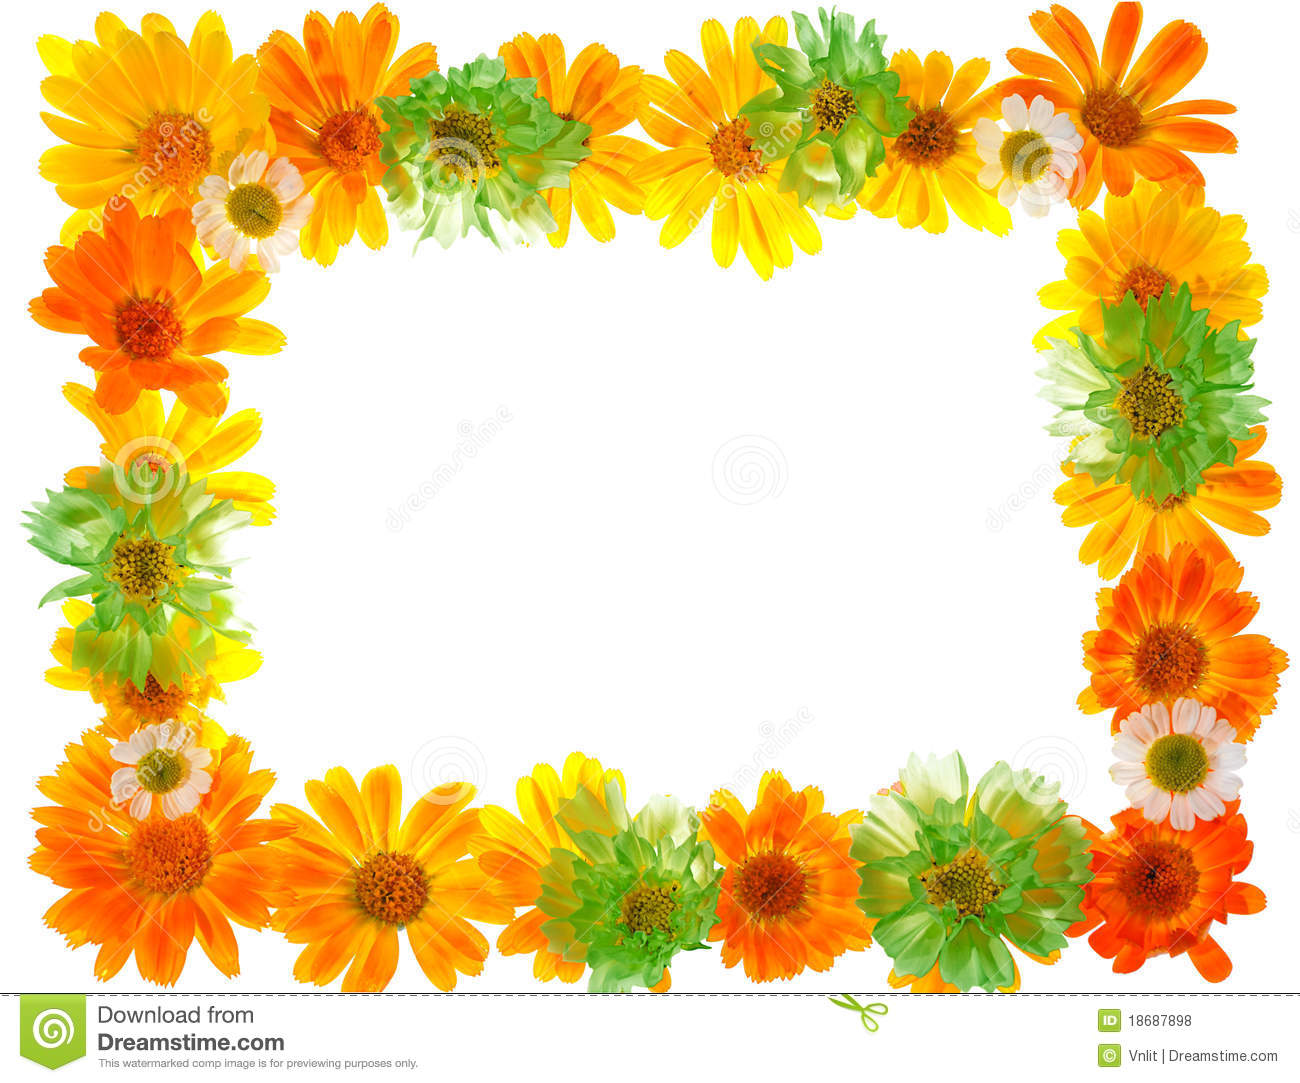 Floral images free download image library Floral Frame Royalty Free Stock Photos - Image: 18687898 image library